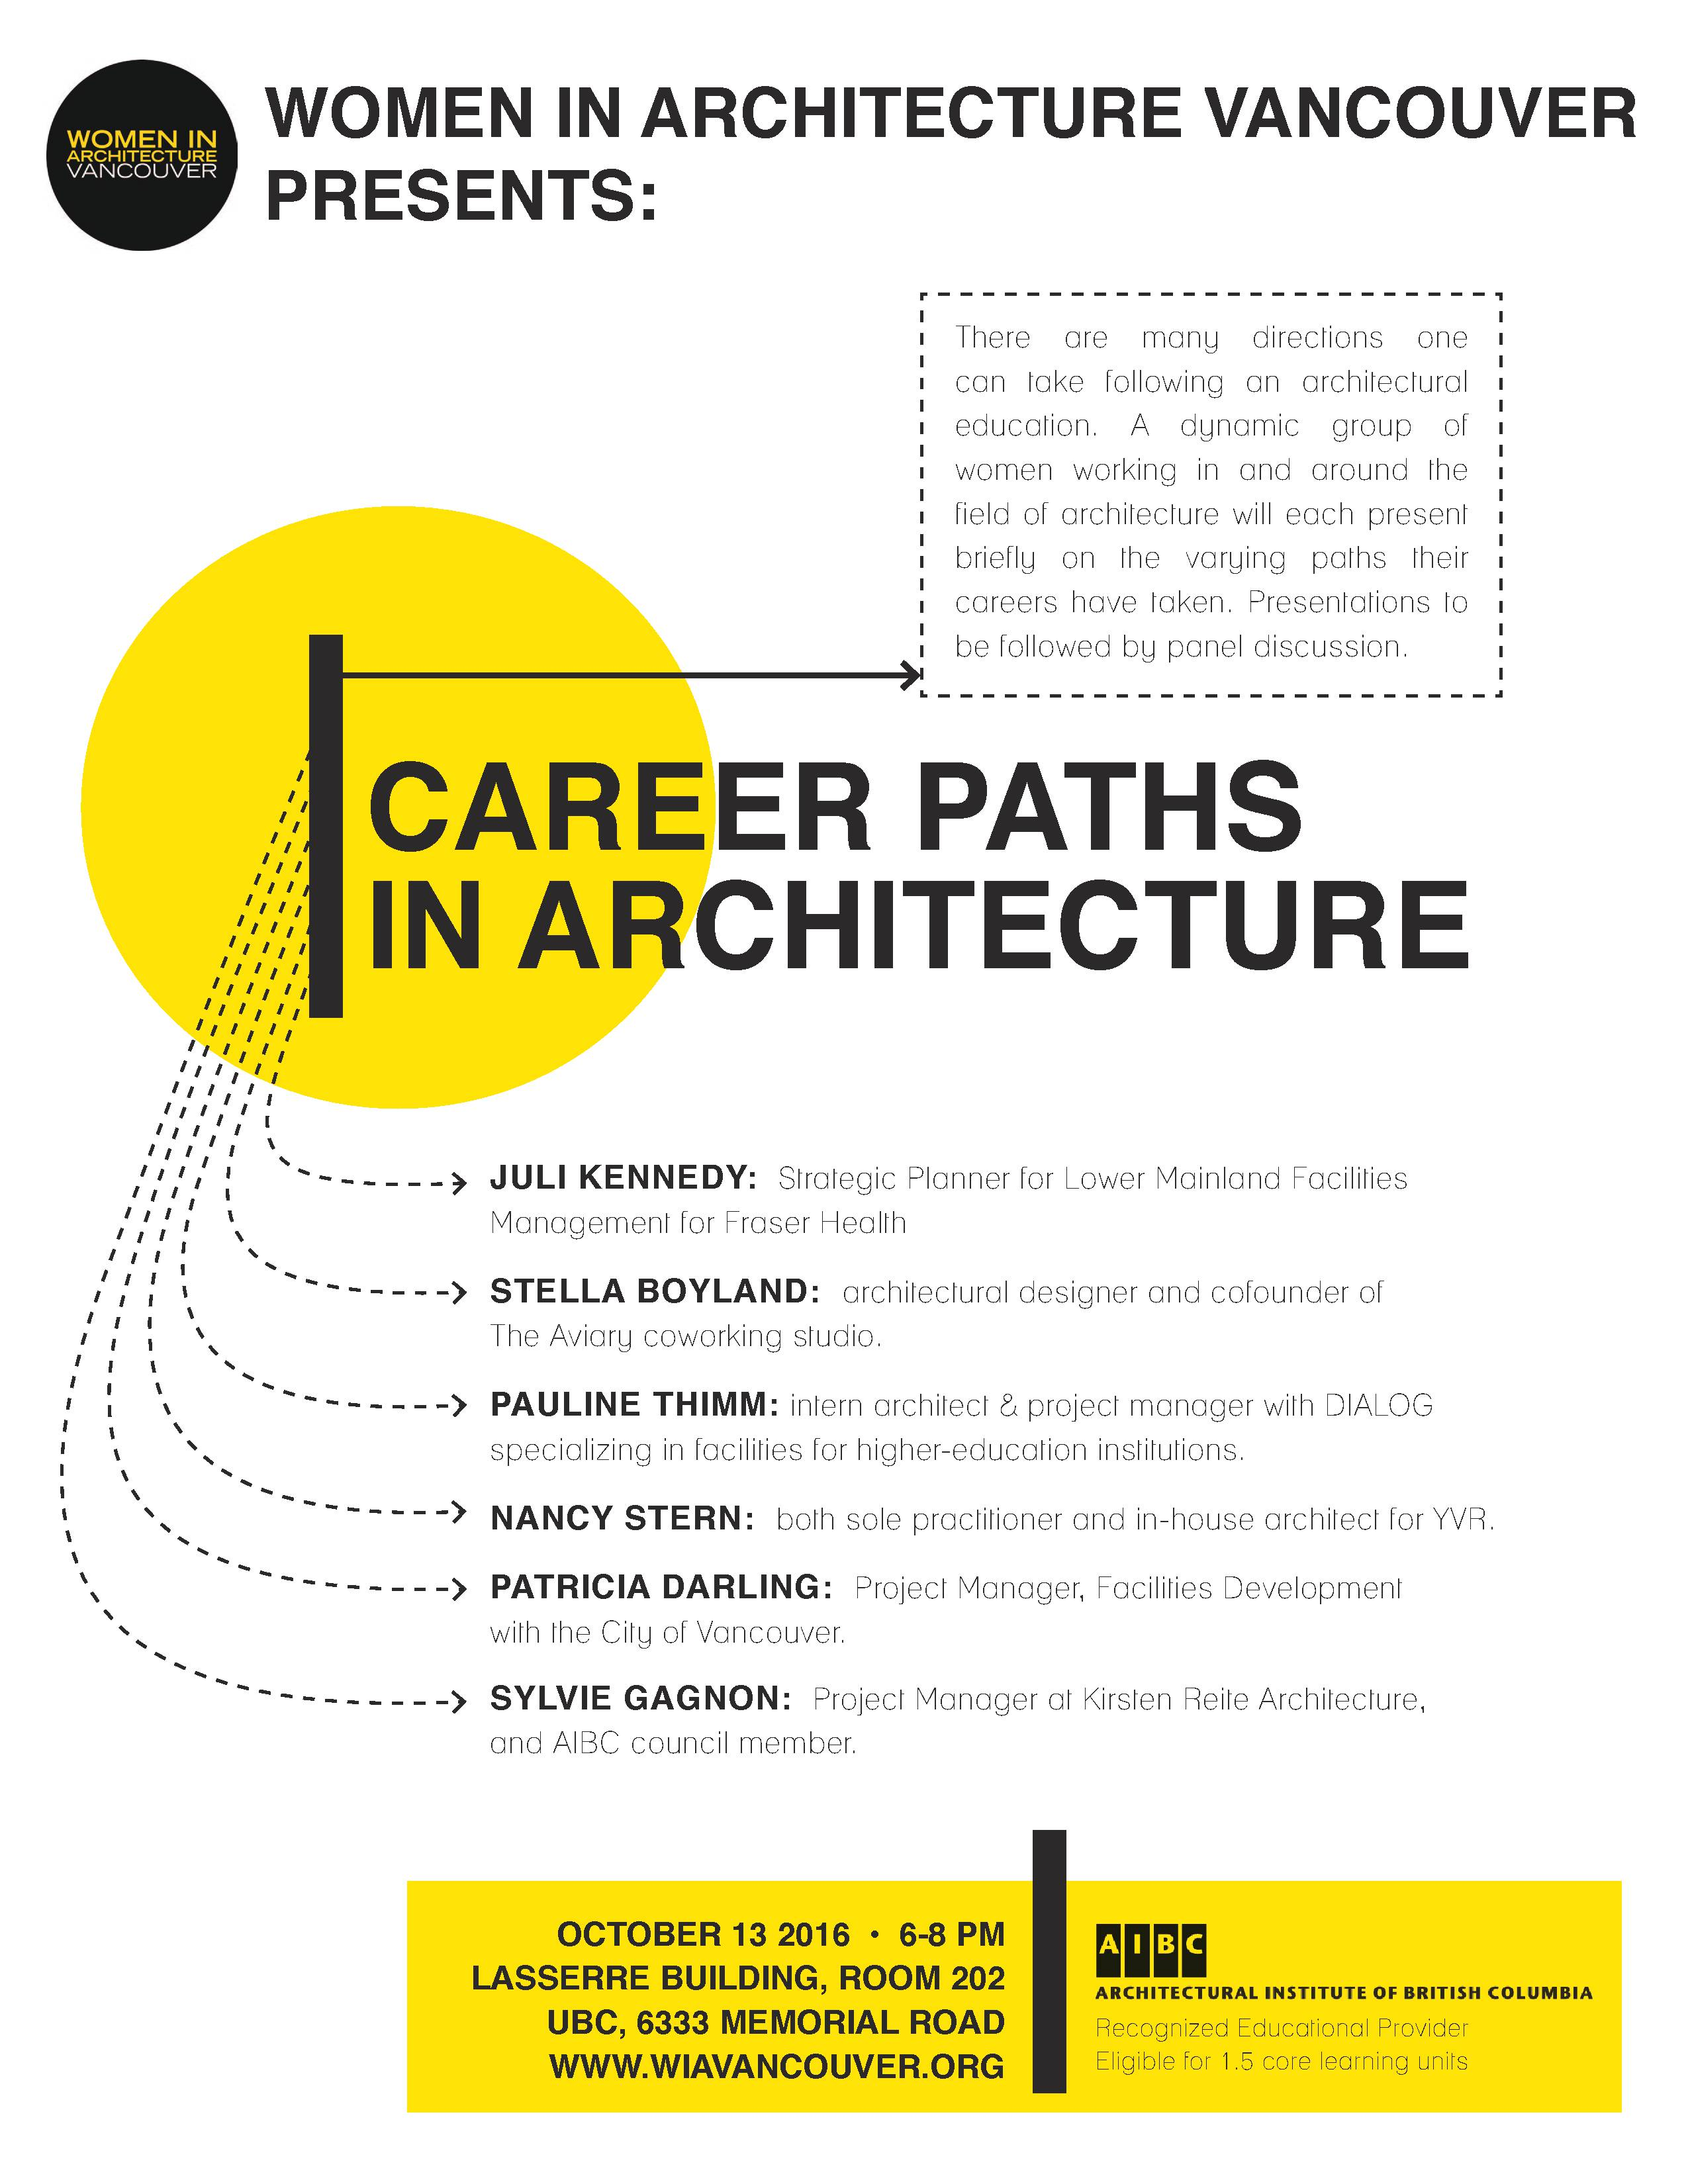 WIA Career Paths in Architecture @ UBC, Lasserre Building